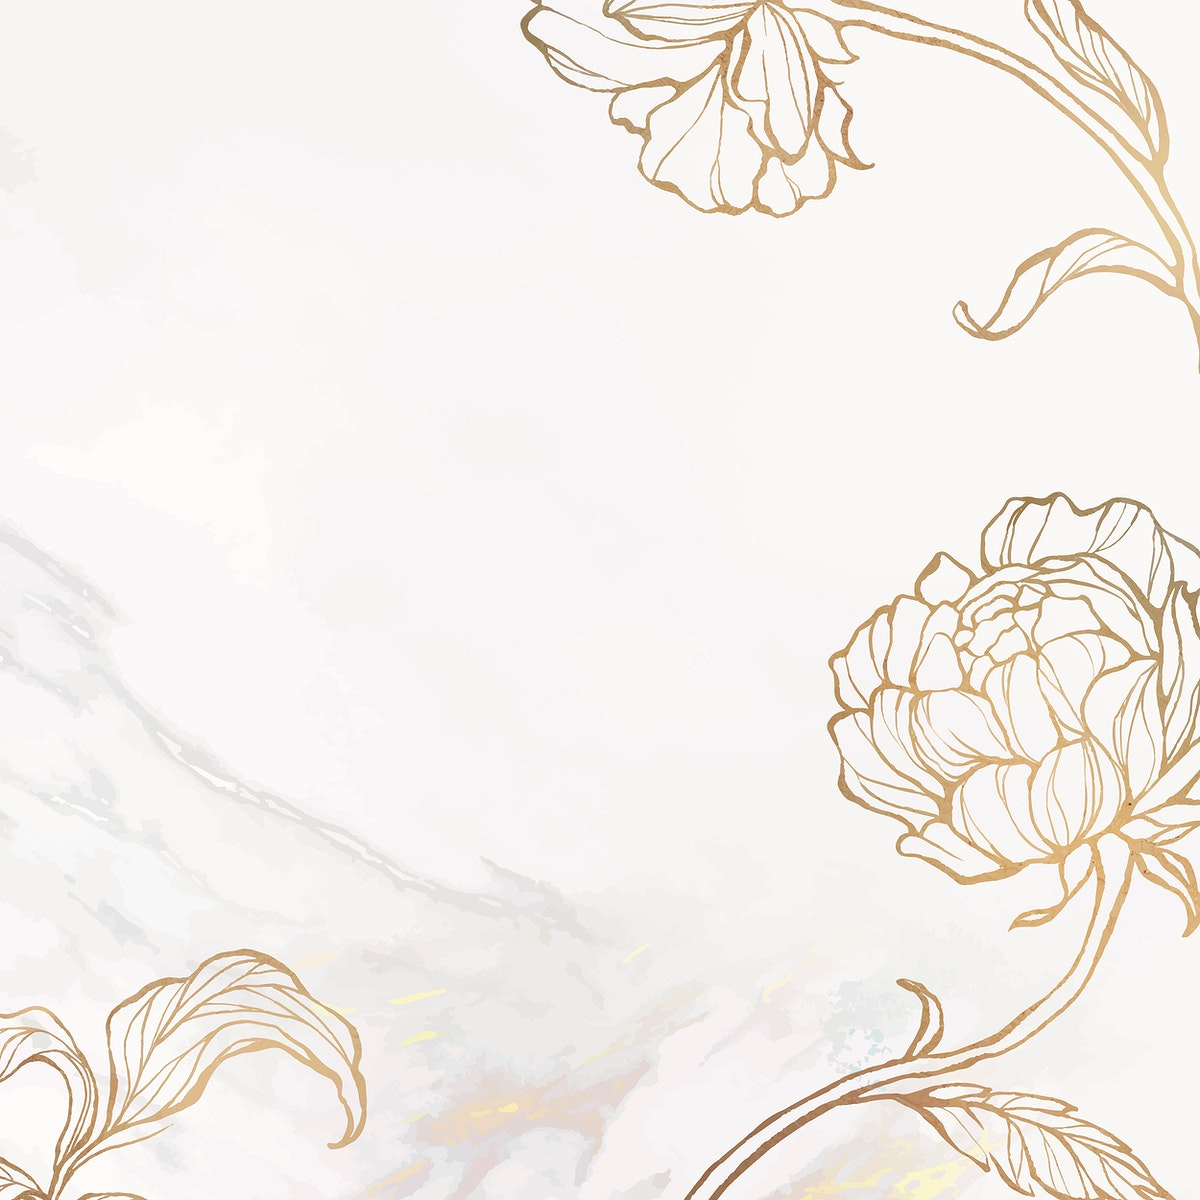 Gold leaves outline on marble background